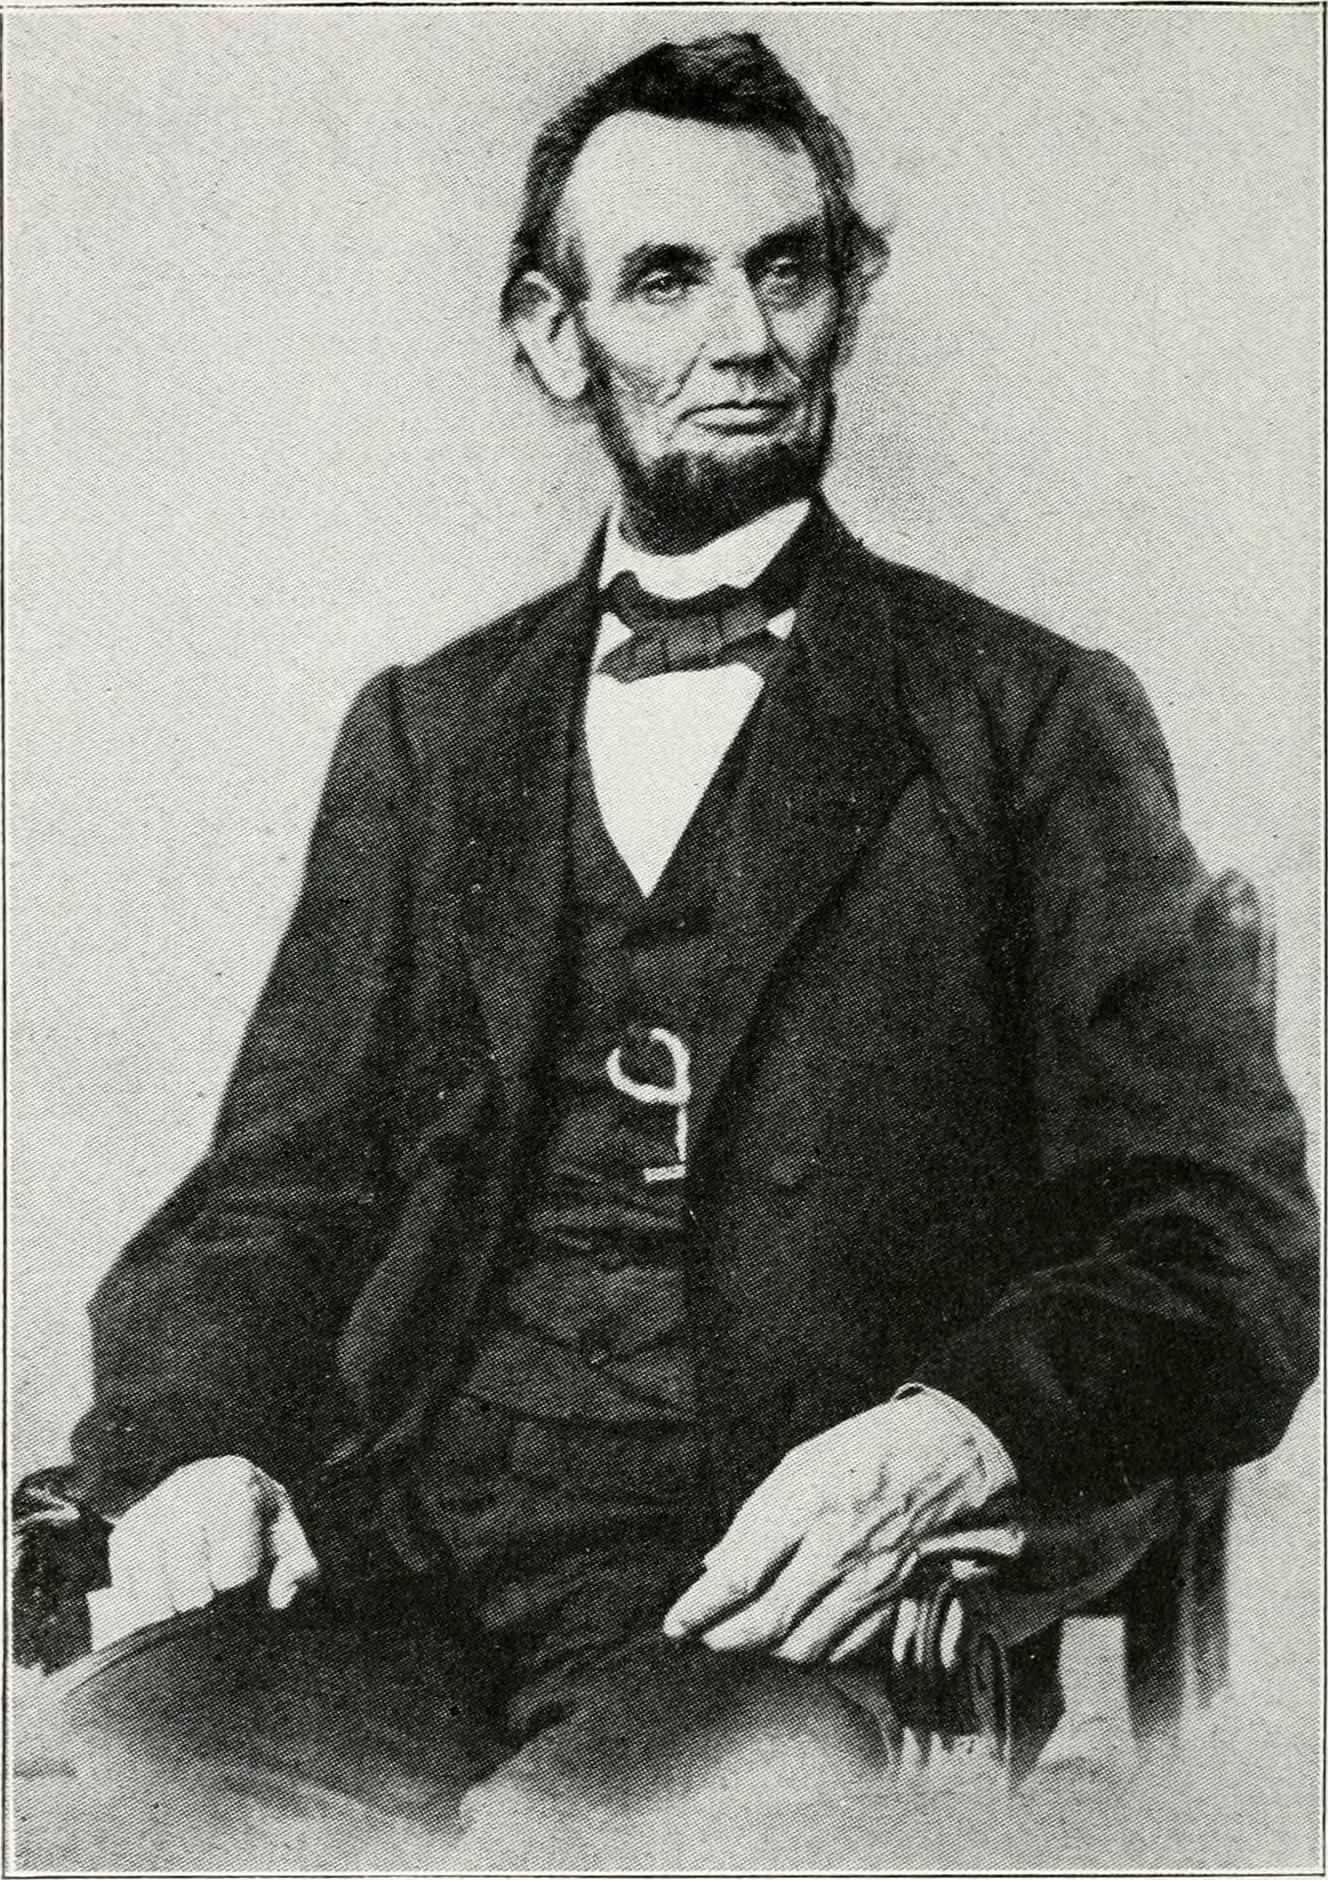 Abraham Lincoln Bio Filelife Of Abraham Lincoln Illustrated A Biographical Sketch